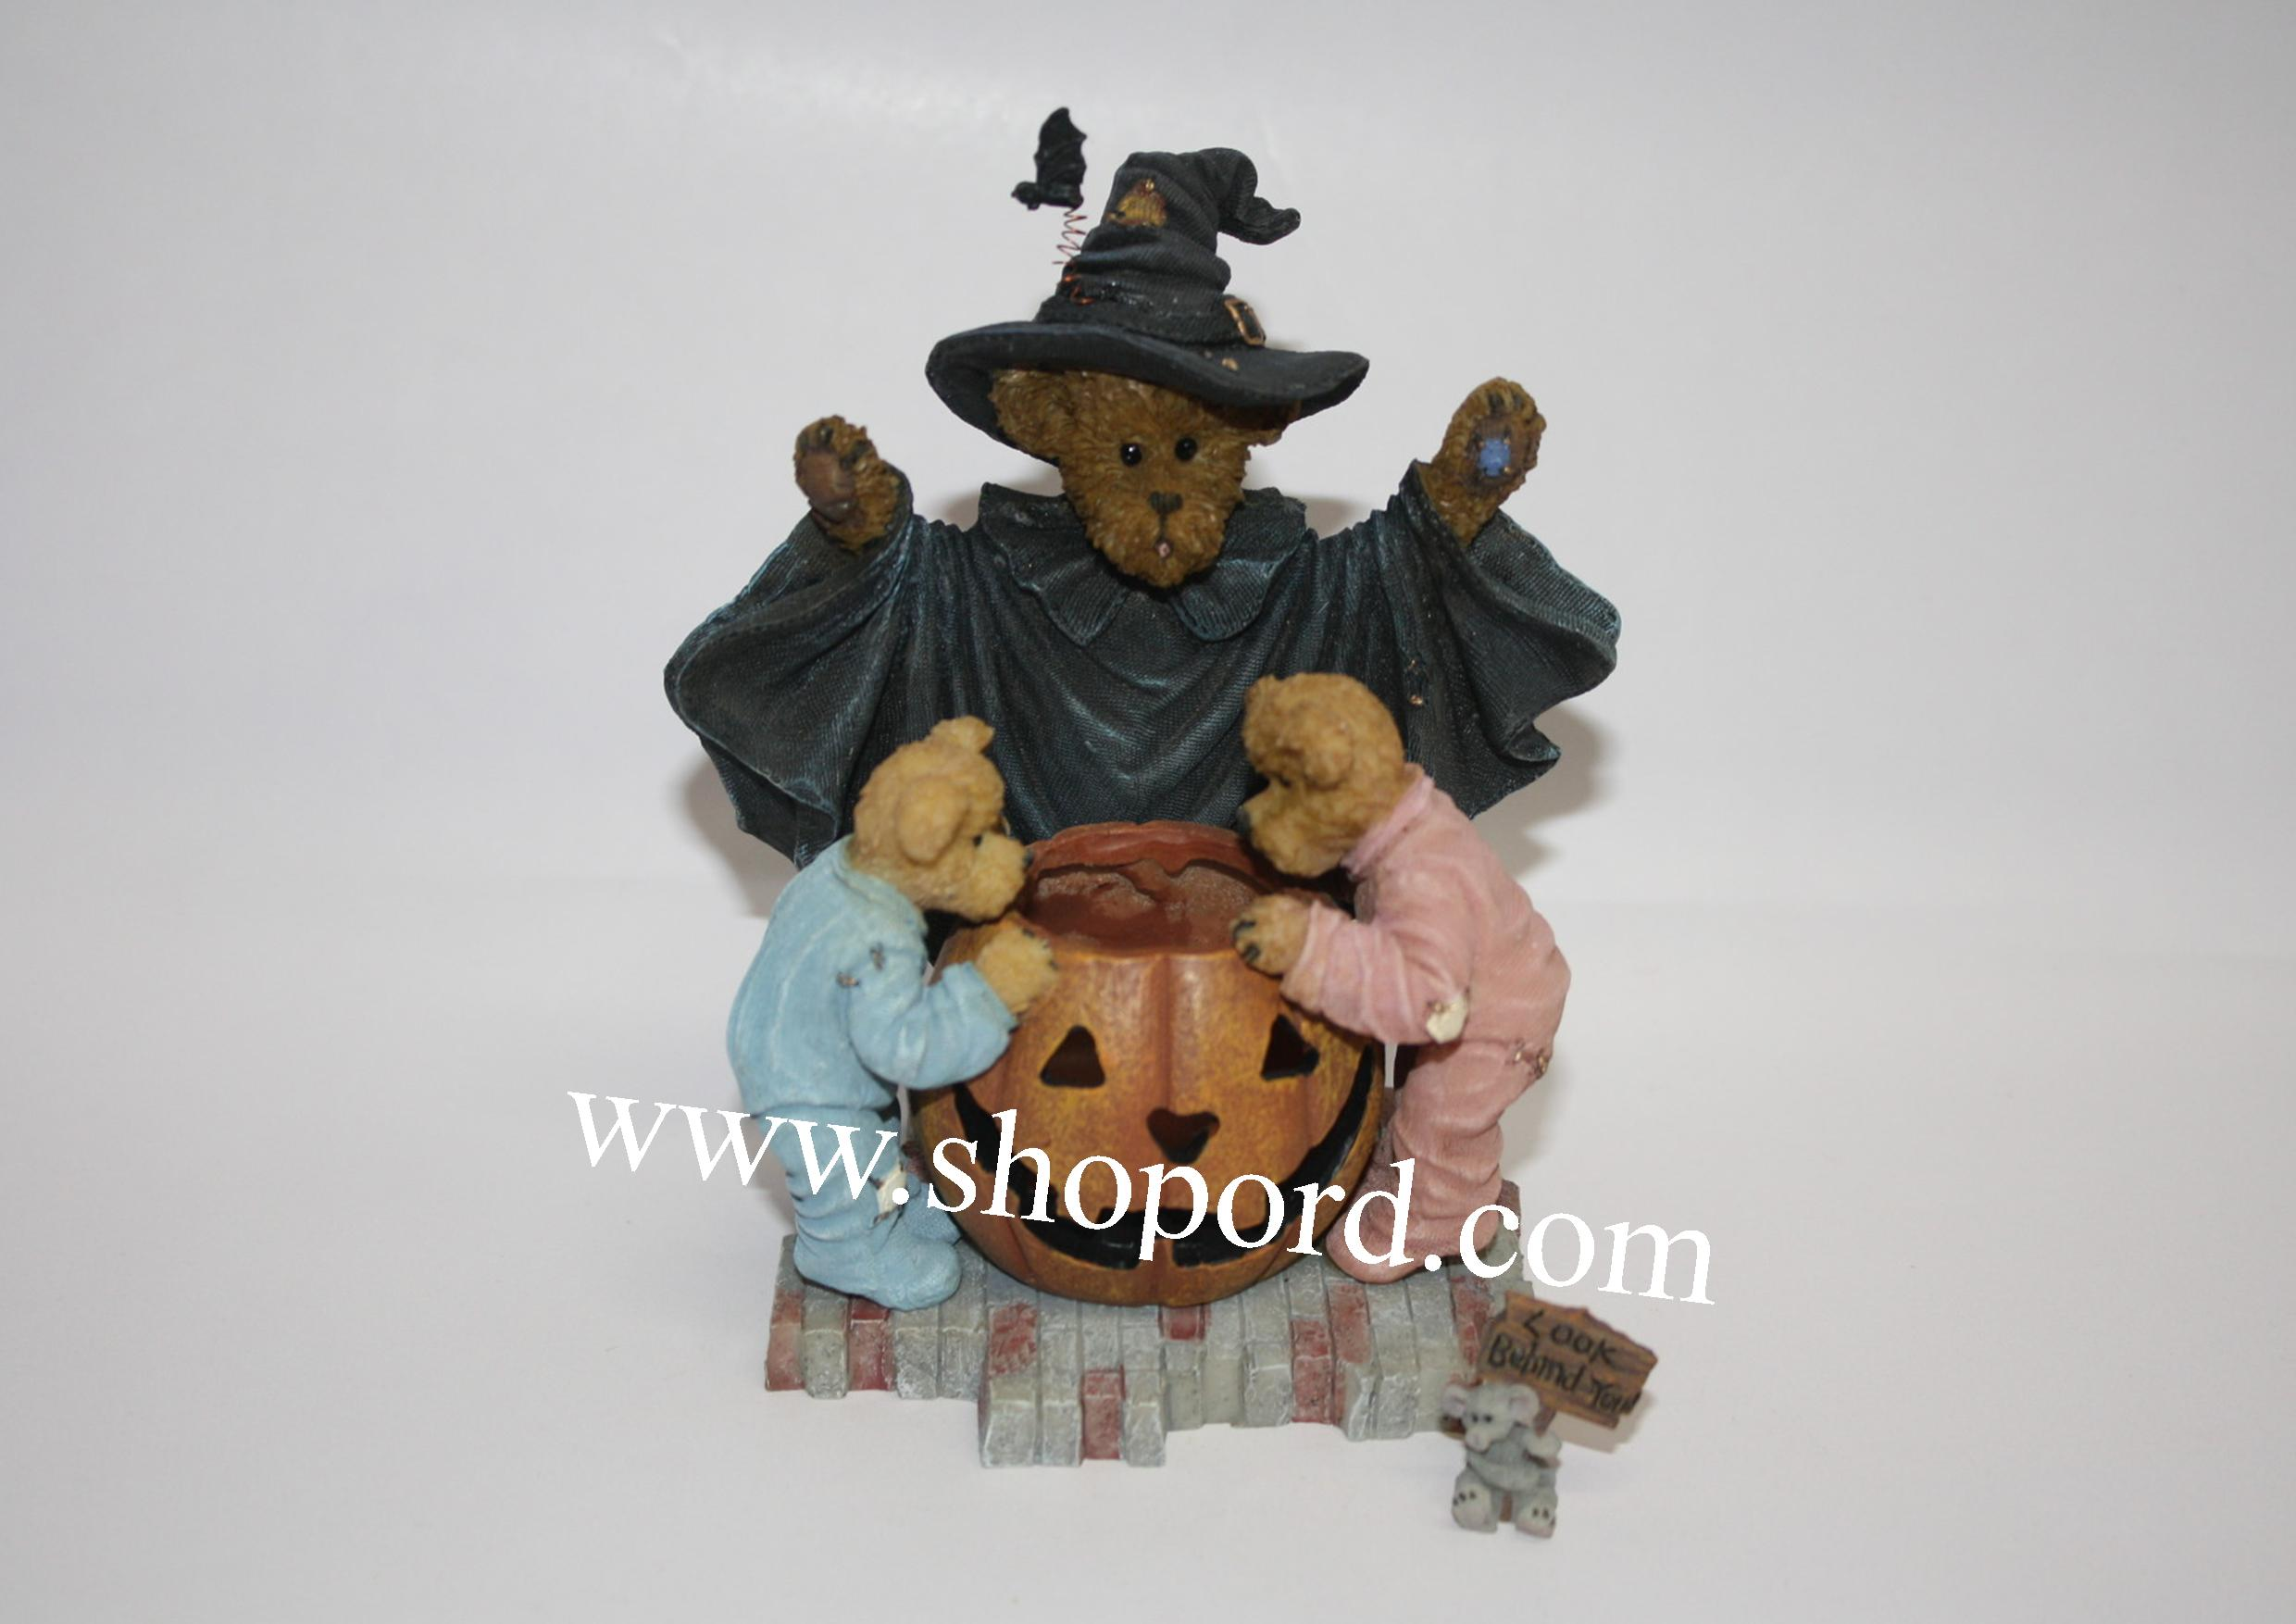 Boyds The Bearstone Collection - Witchella with Peek, Boo and Nibbley (I'm Gonna Get Ya) #4022267